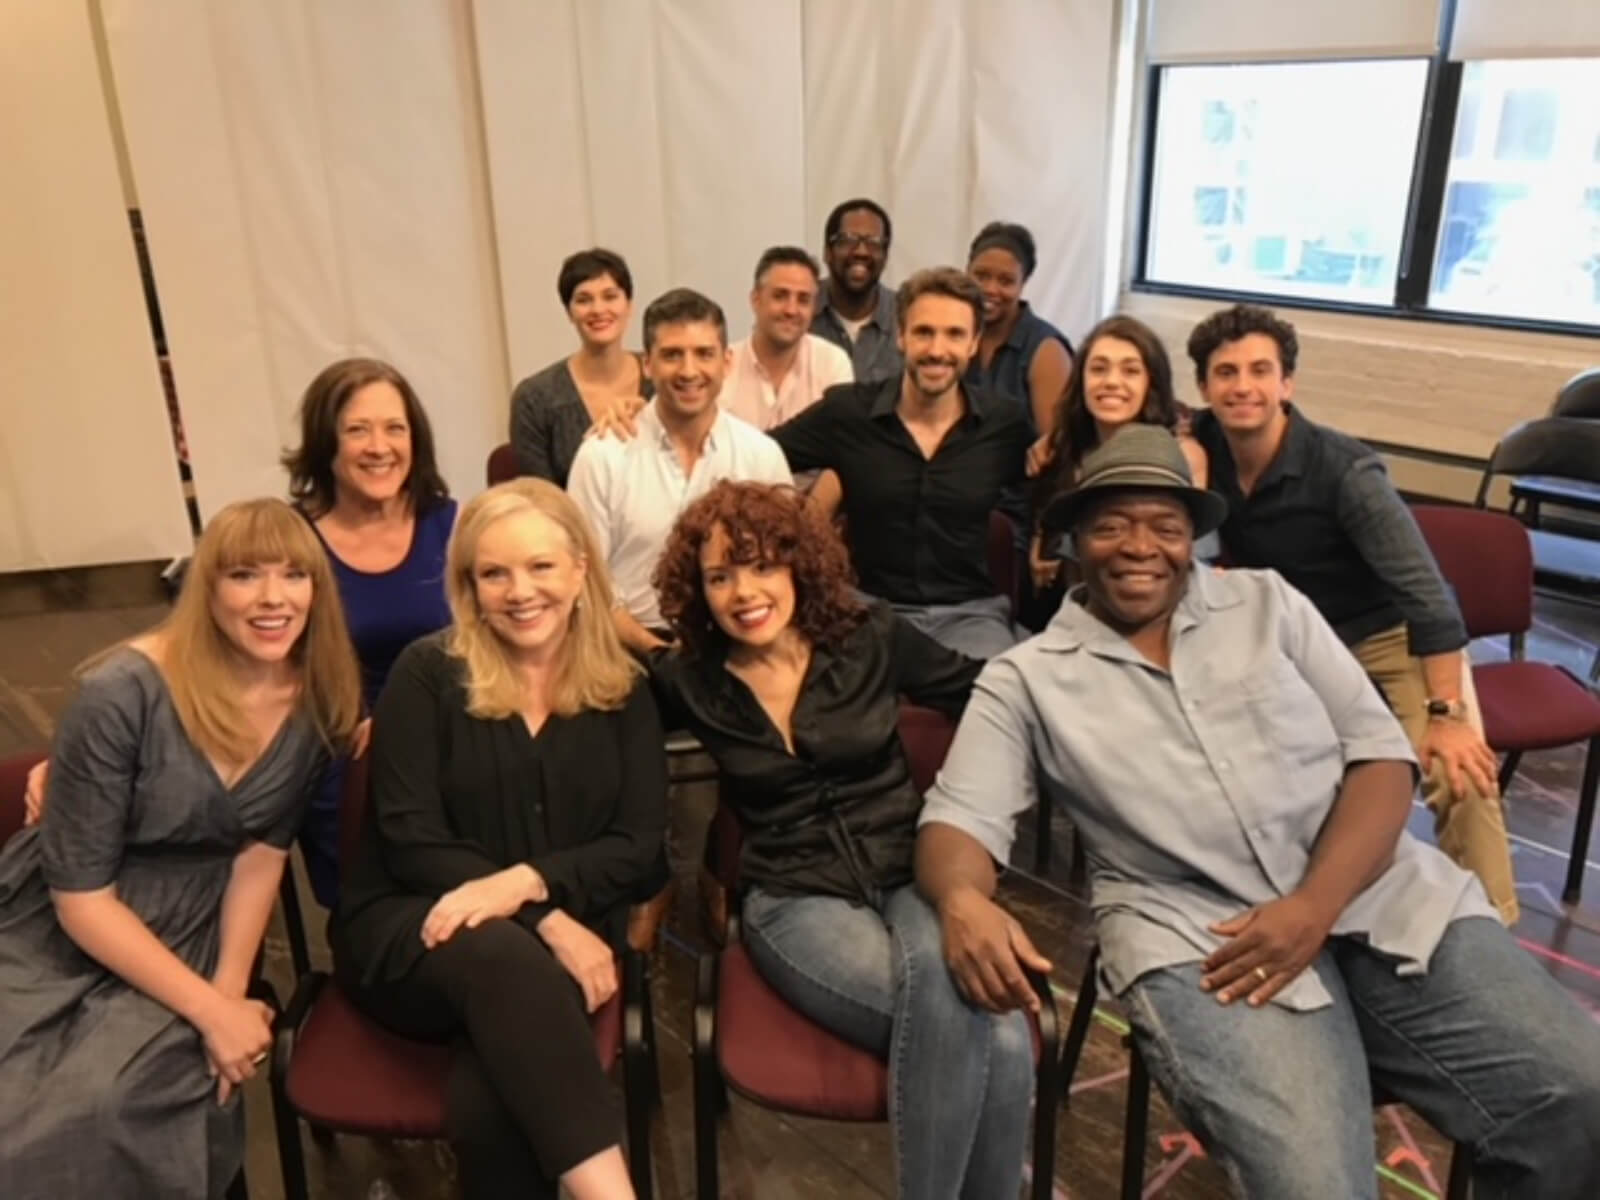 Susan Stroman with the Broadway company of Prince of Broadway. They are in rehearsal sitting in chairs surrounding Susan Stroman.